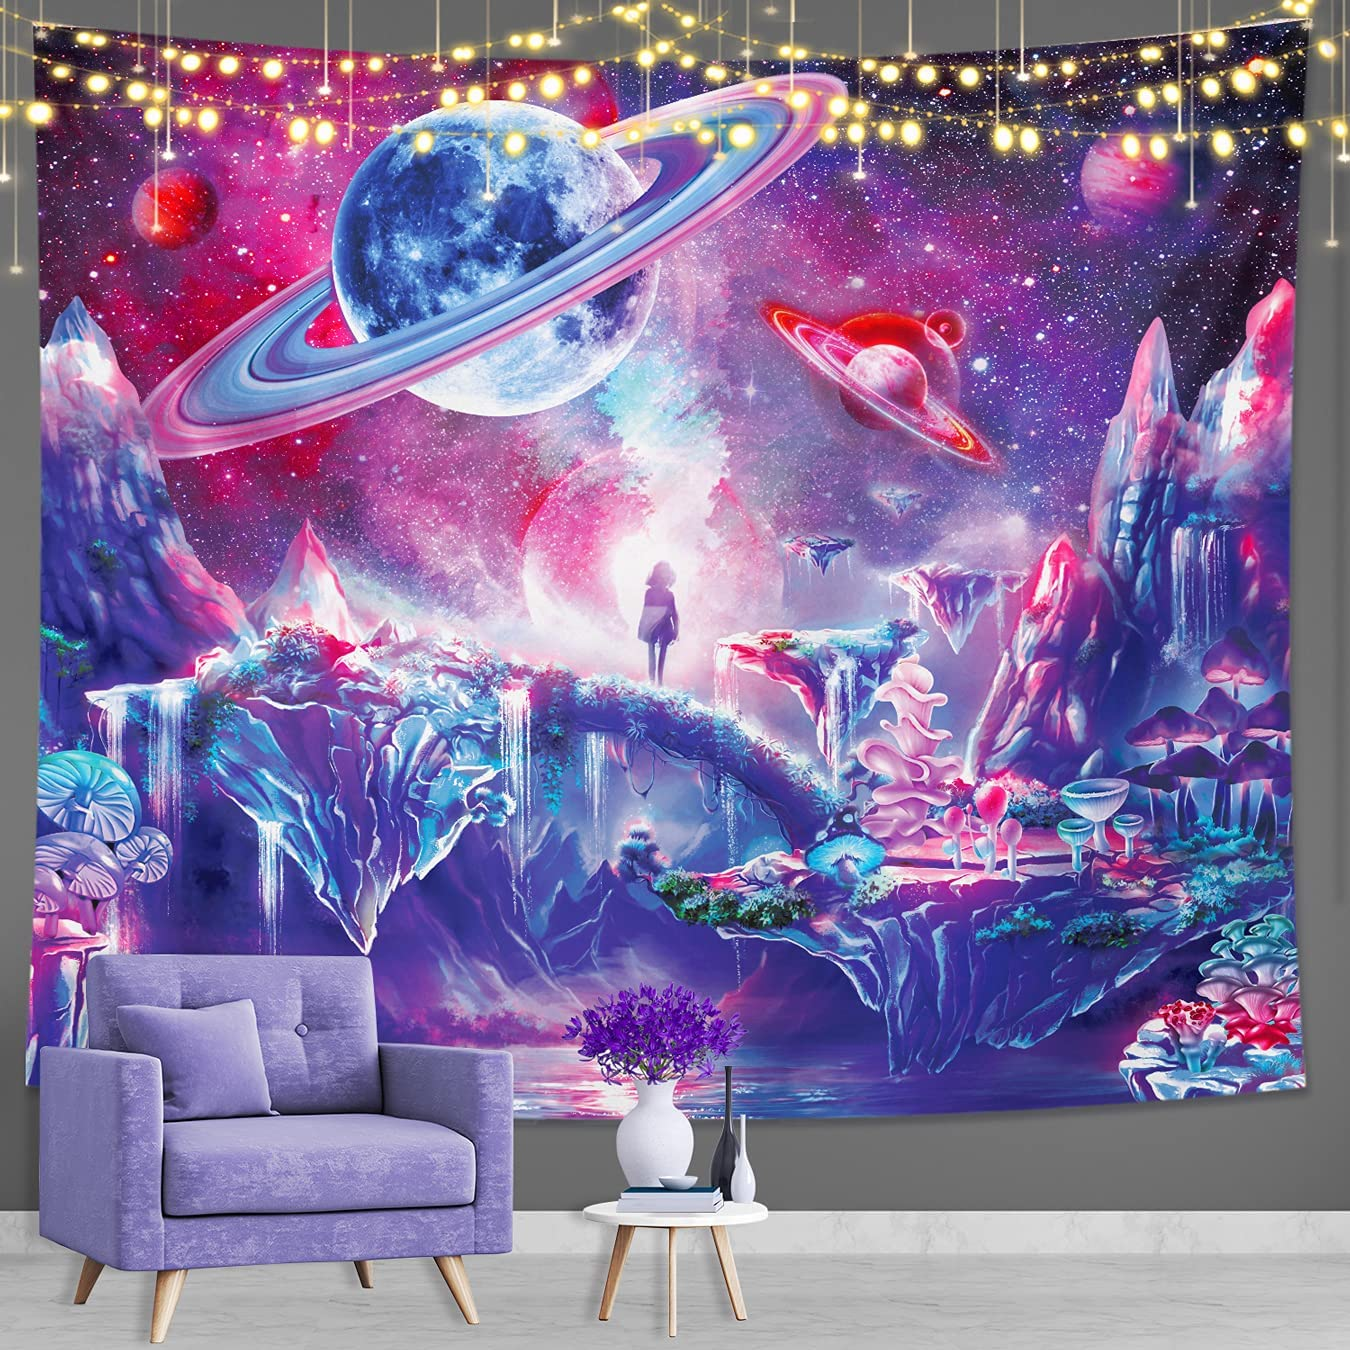 DESIHOM Purple Galaxy Tapestry Trippy Tapestry Space Tapestry Universe Tapestry Glow in the Dark Tapestry Poster Psychedelic Tapestry Wall Tapestry for Bedroom Living Room Dorm Decor 59x51 Inch